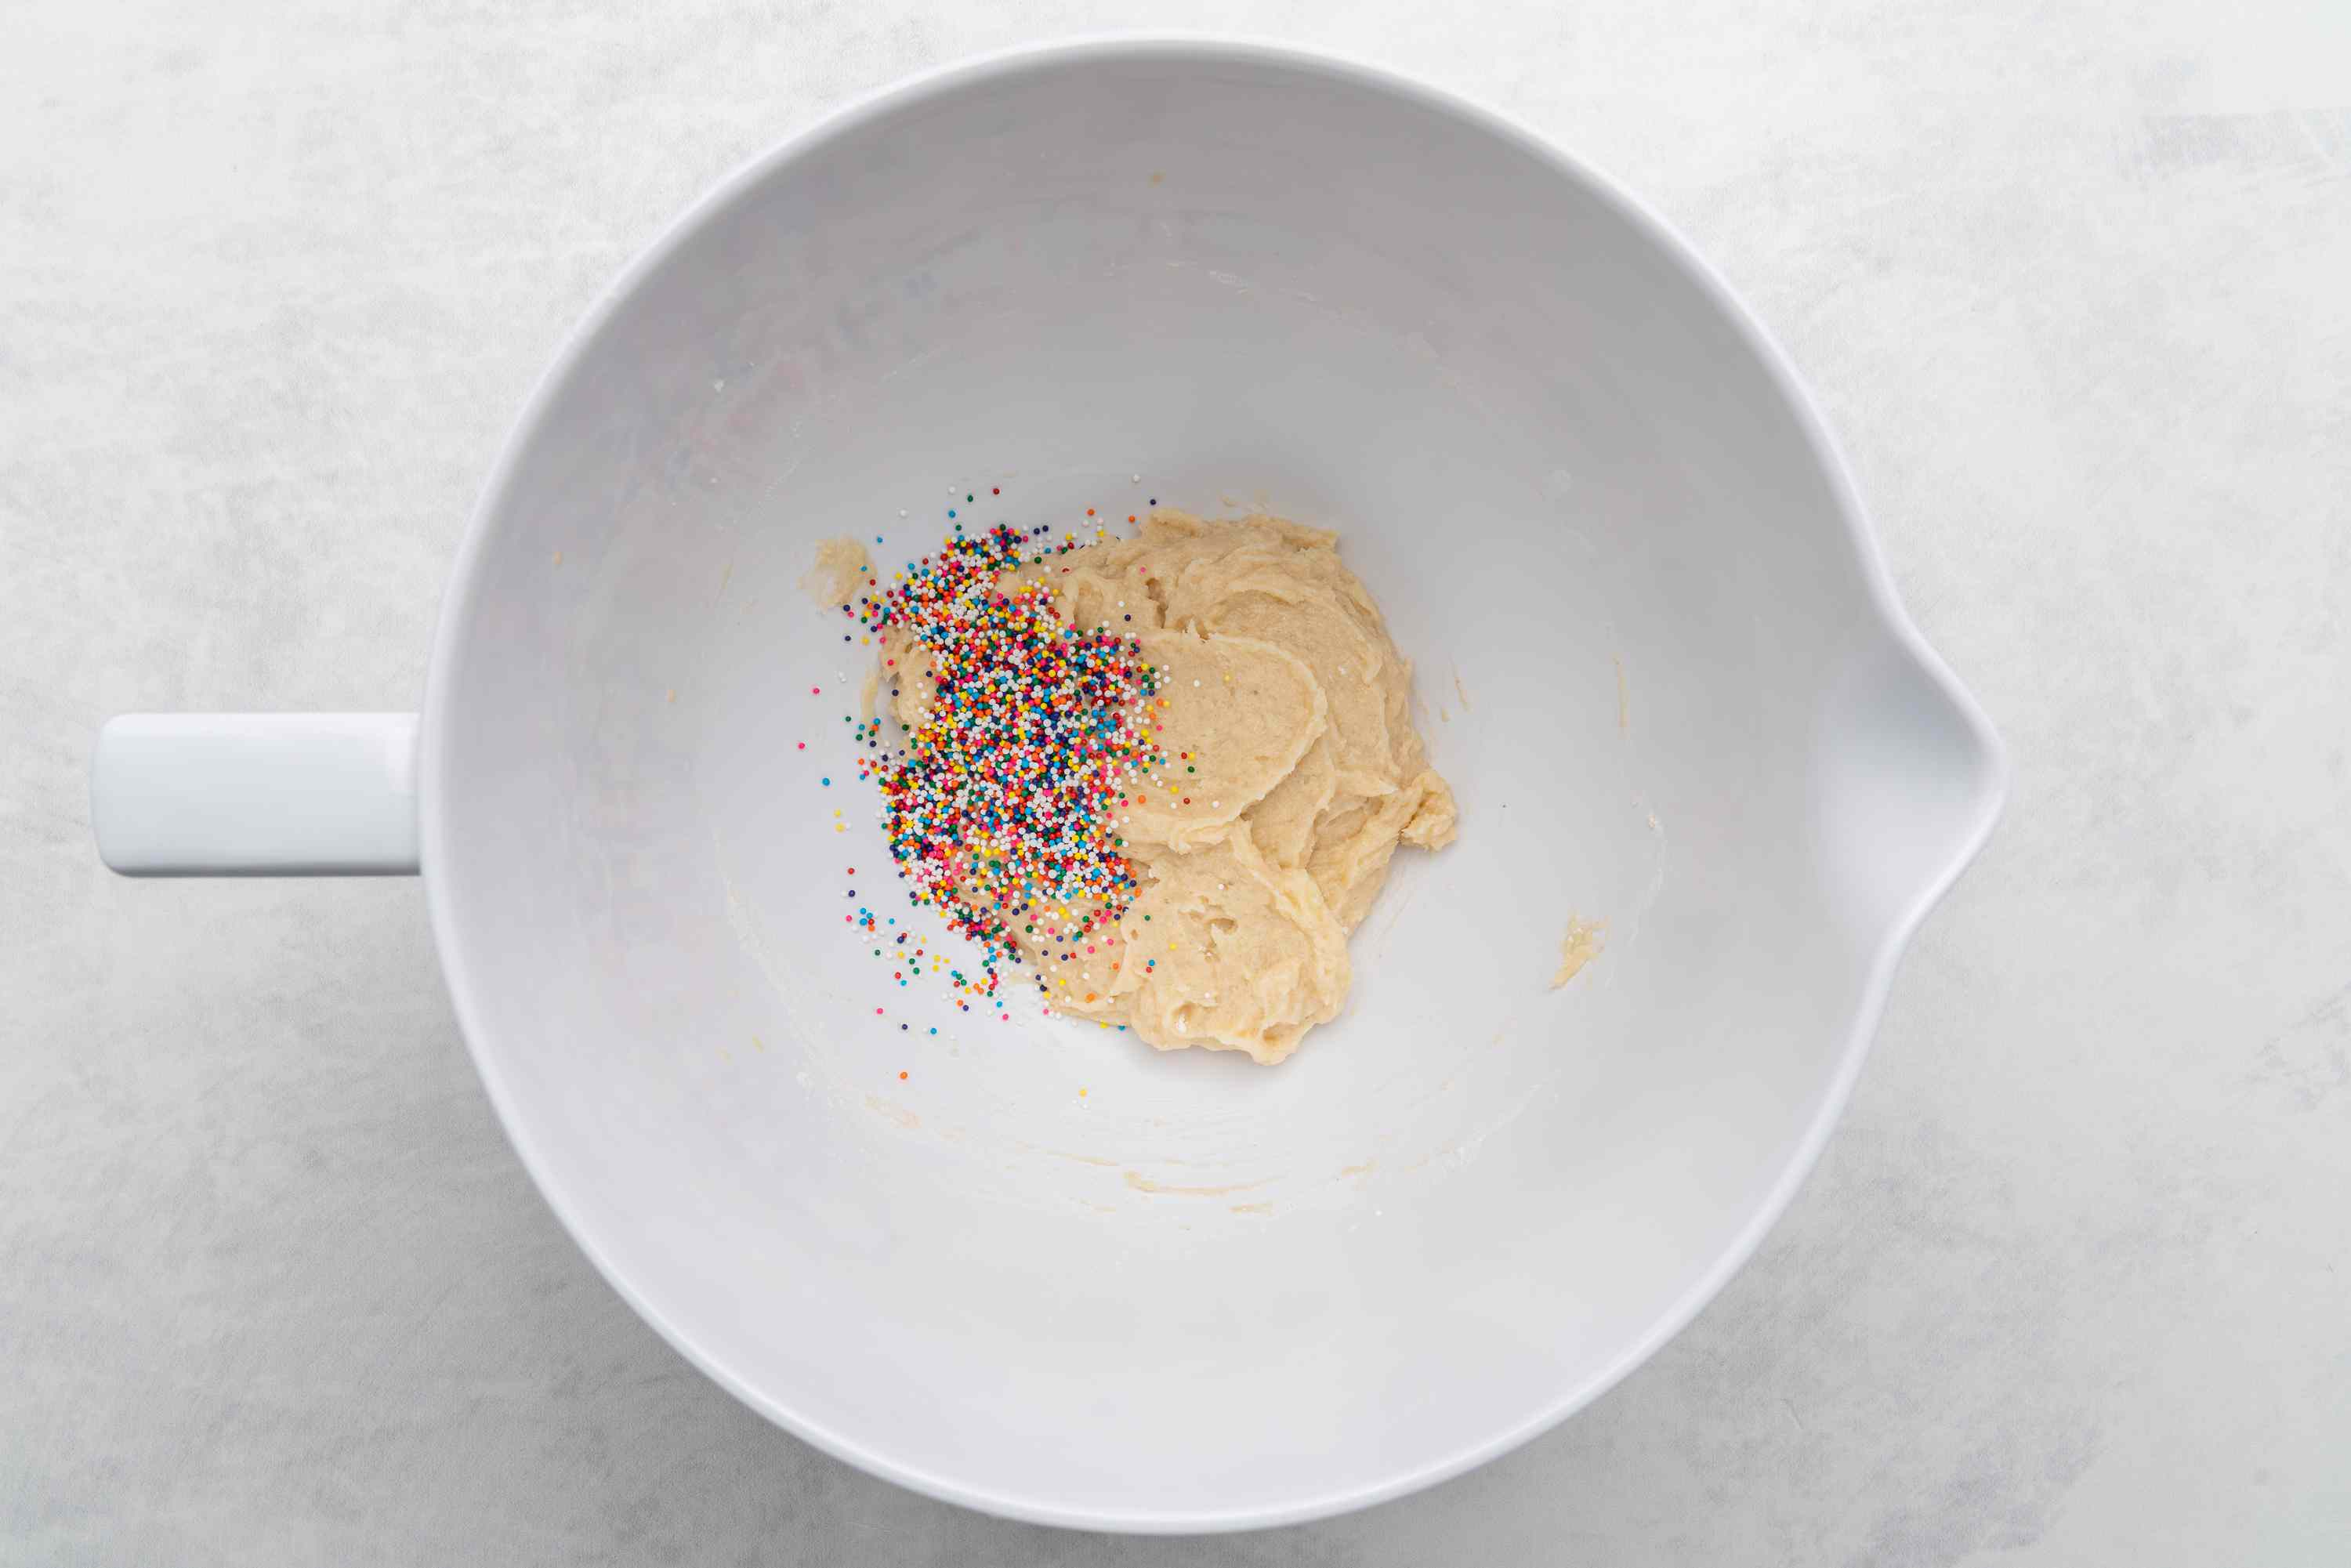 dough in bowl with sprinkles